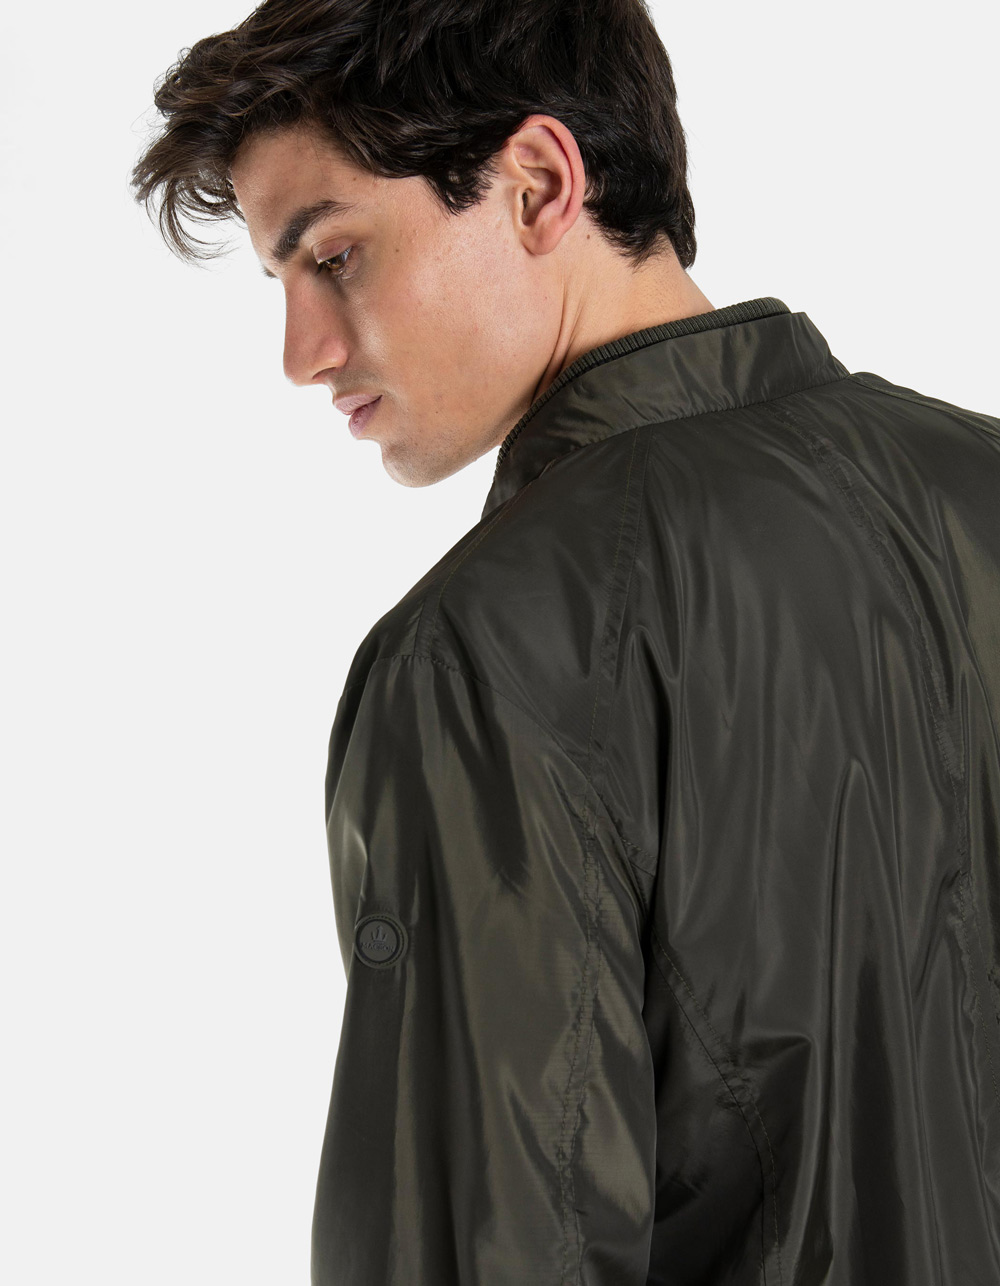 Kaky sport jacket - Backside